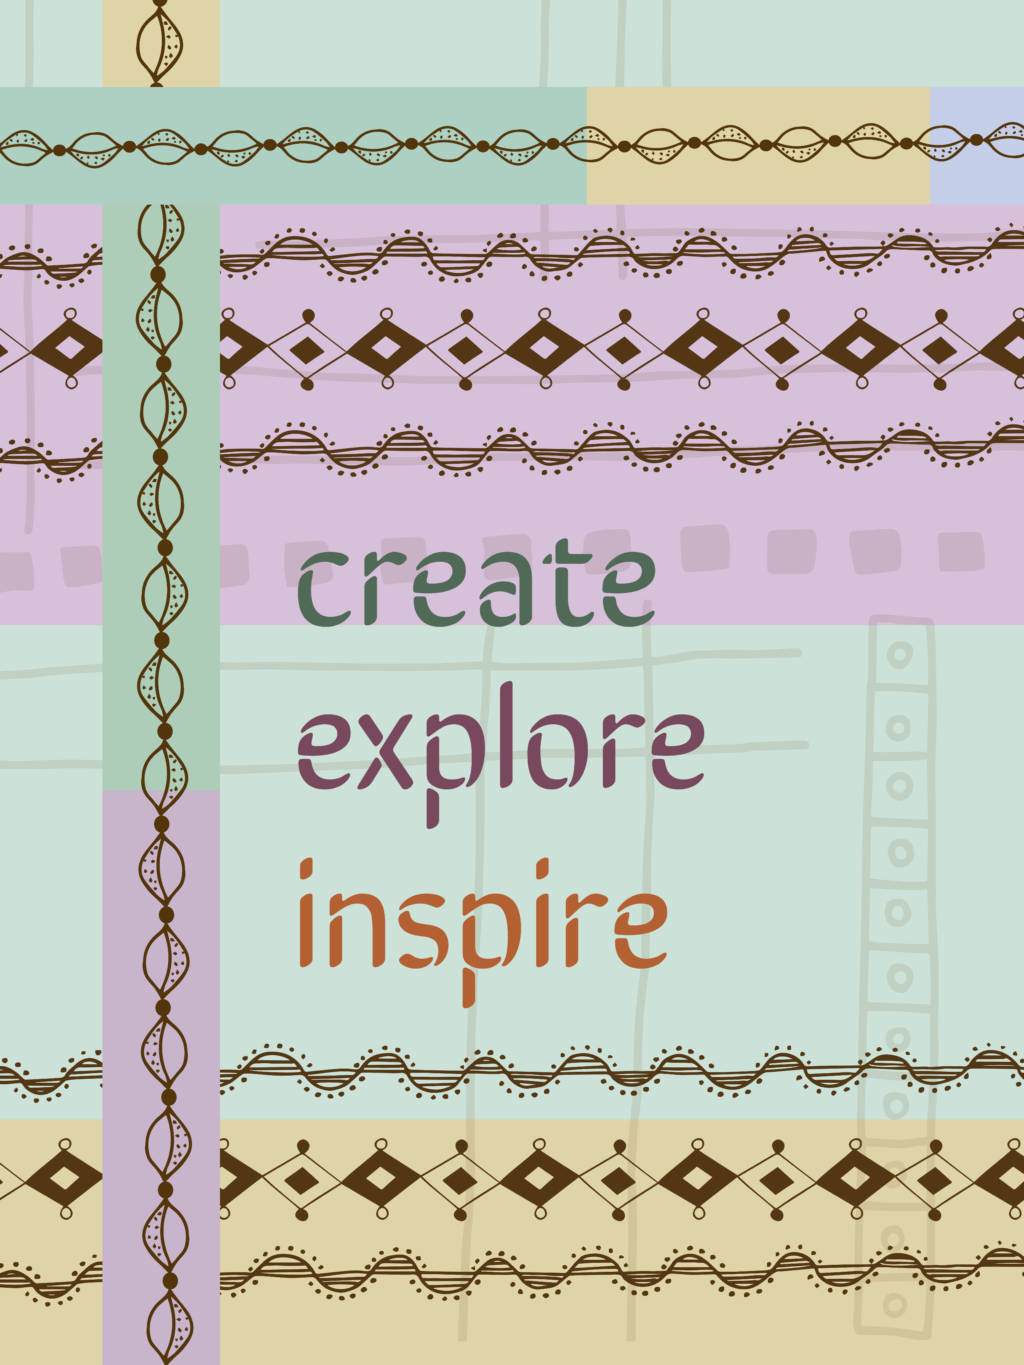 Completed Create, Explore, Inspire design.